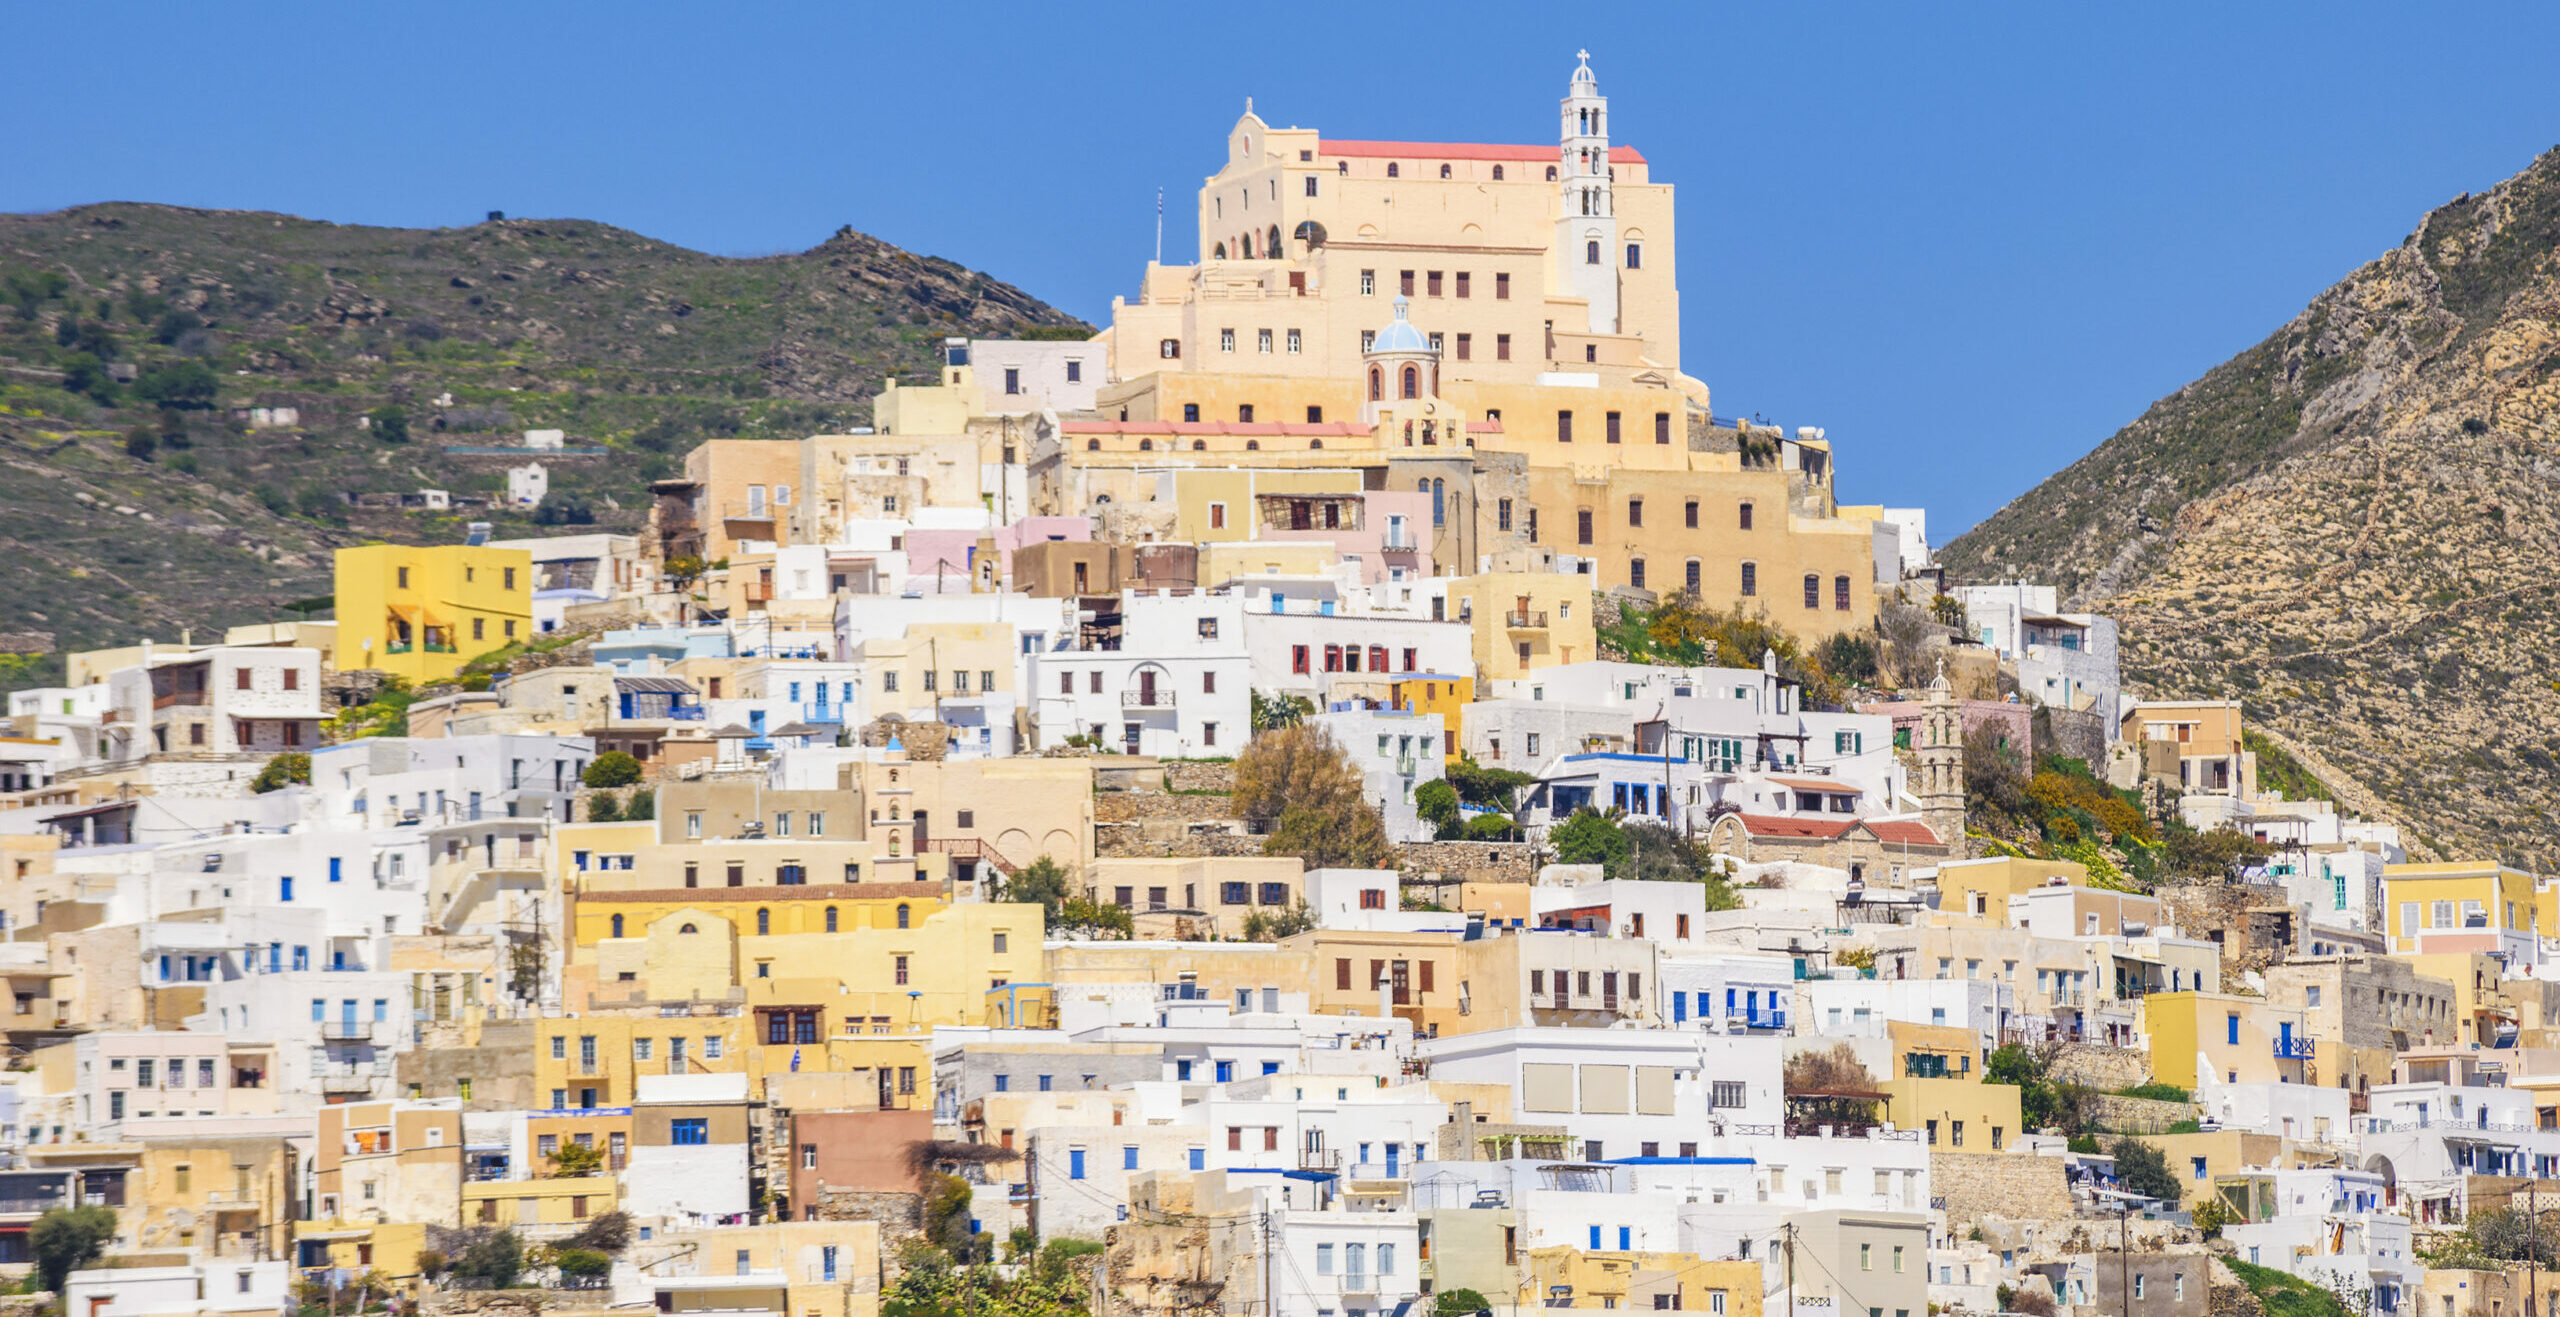 CNN: These are 17 most beautiful Greek villages